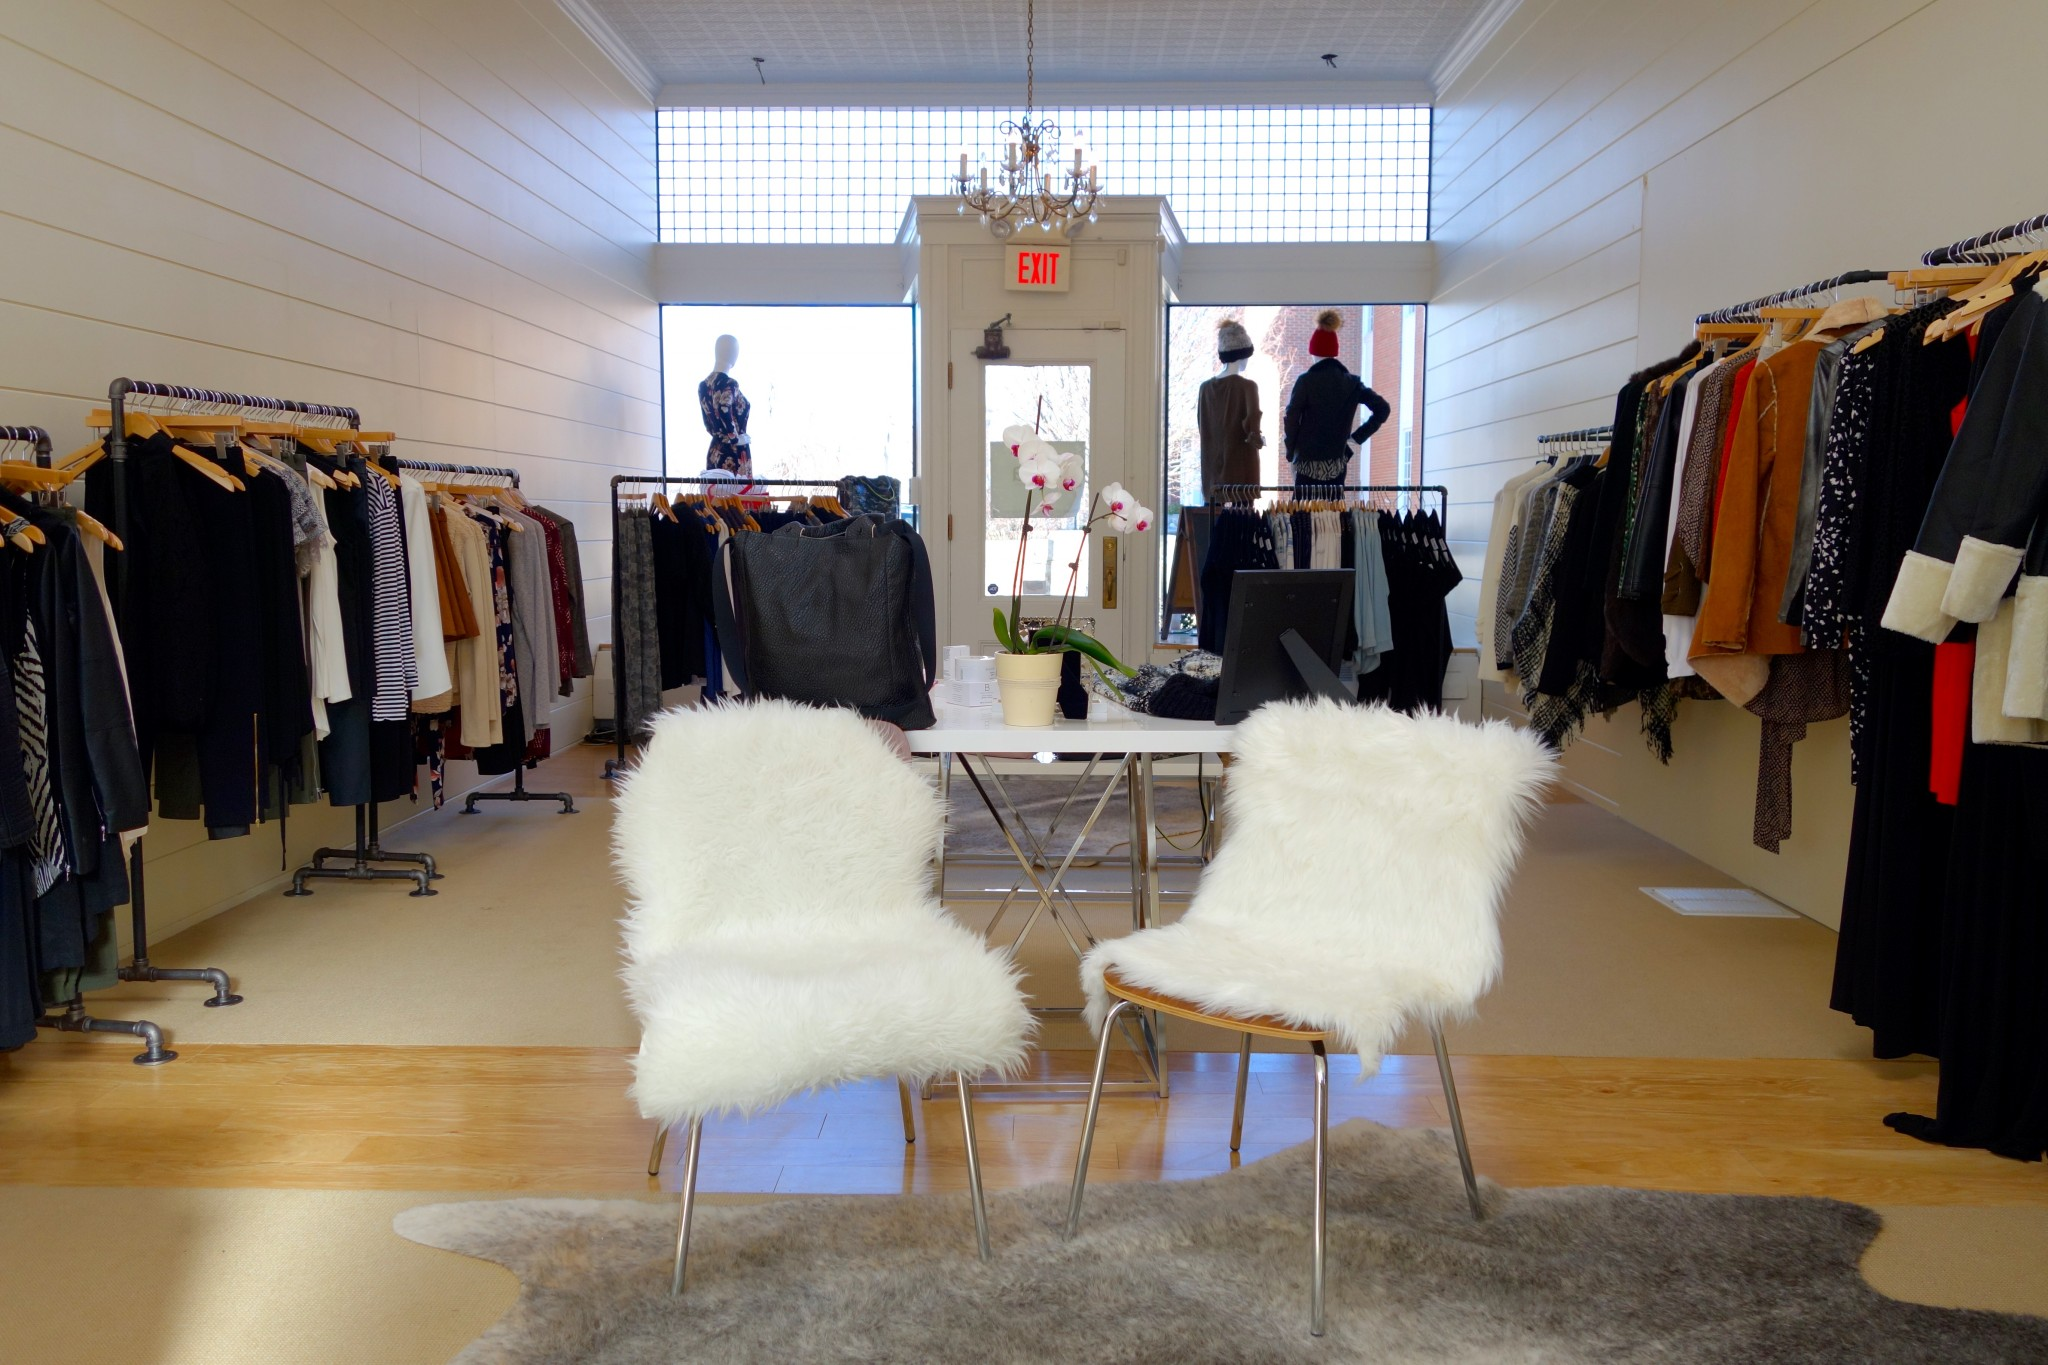 alba boutique, wellesley, the-alyst.com